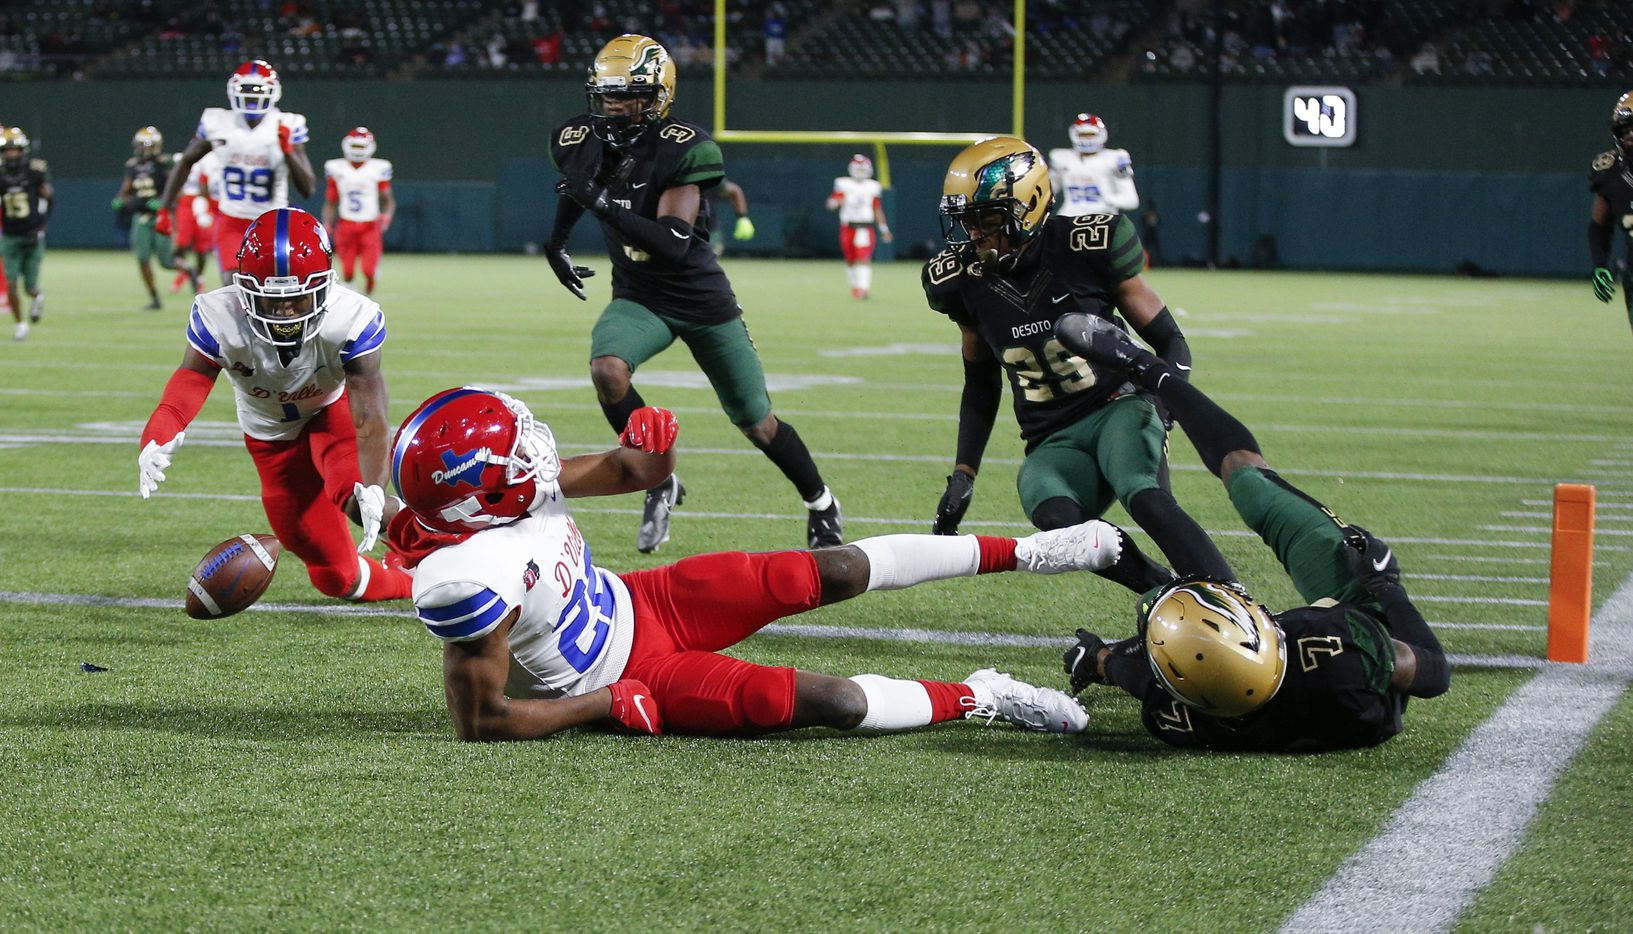 Duncanville sophomore wide receiver Lontrell Turner (22) fumbles the ball short of the end zone during the first half of a Class 6A Division I Region II final high school football game against DeSoto, Saturday, January 2, 2021. Duncanville junior running back Chris Hicks (1) would recover the ball in the end zone for the touchdown. Duncanville won 56-28. (Brandon Wade/Special Contributor)